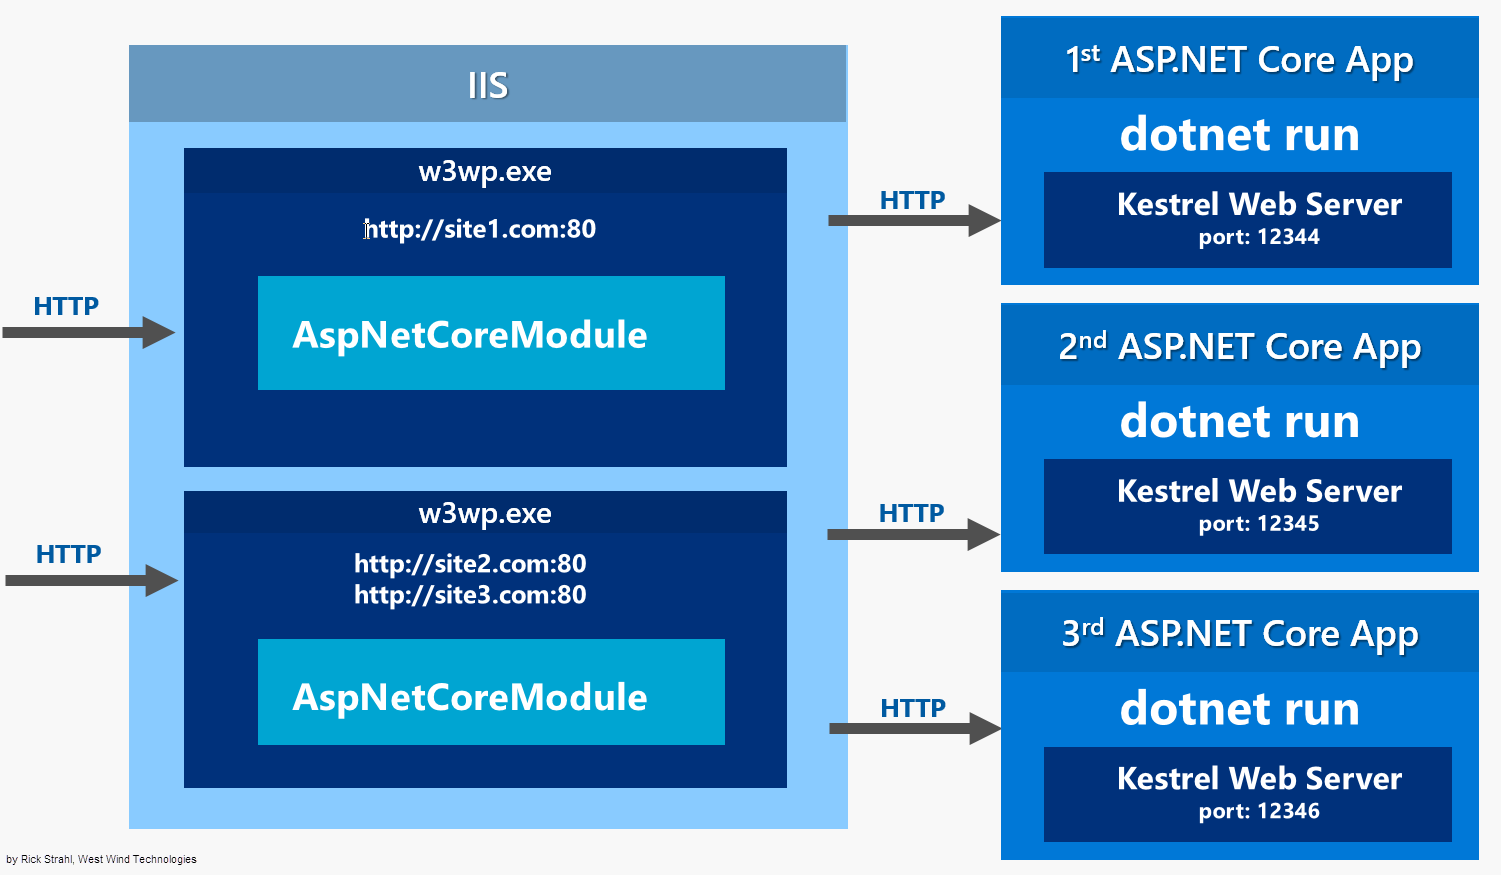 Publishing and Running ASP NET Core Applications with IIS - Rick